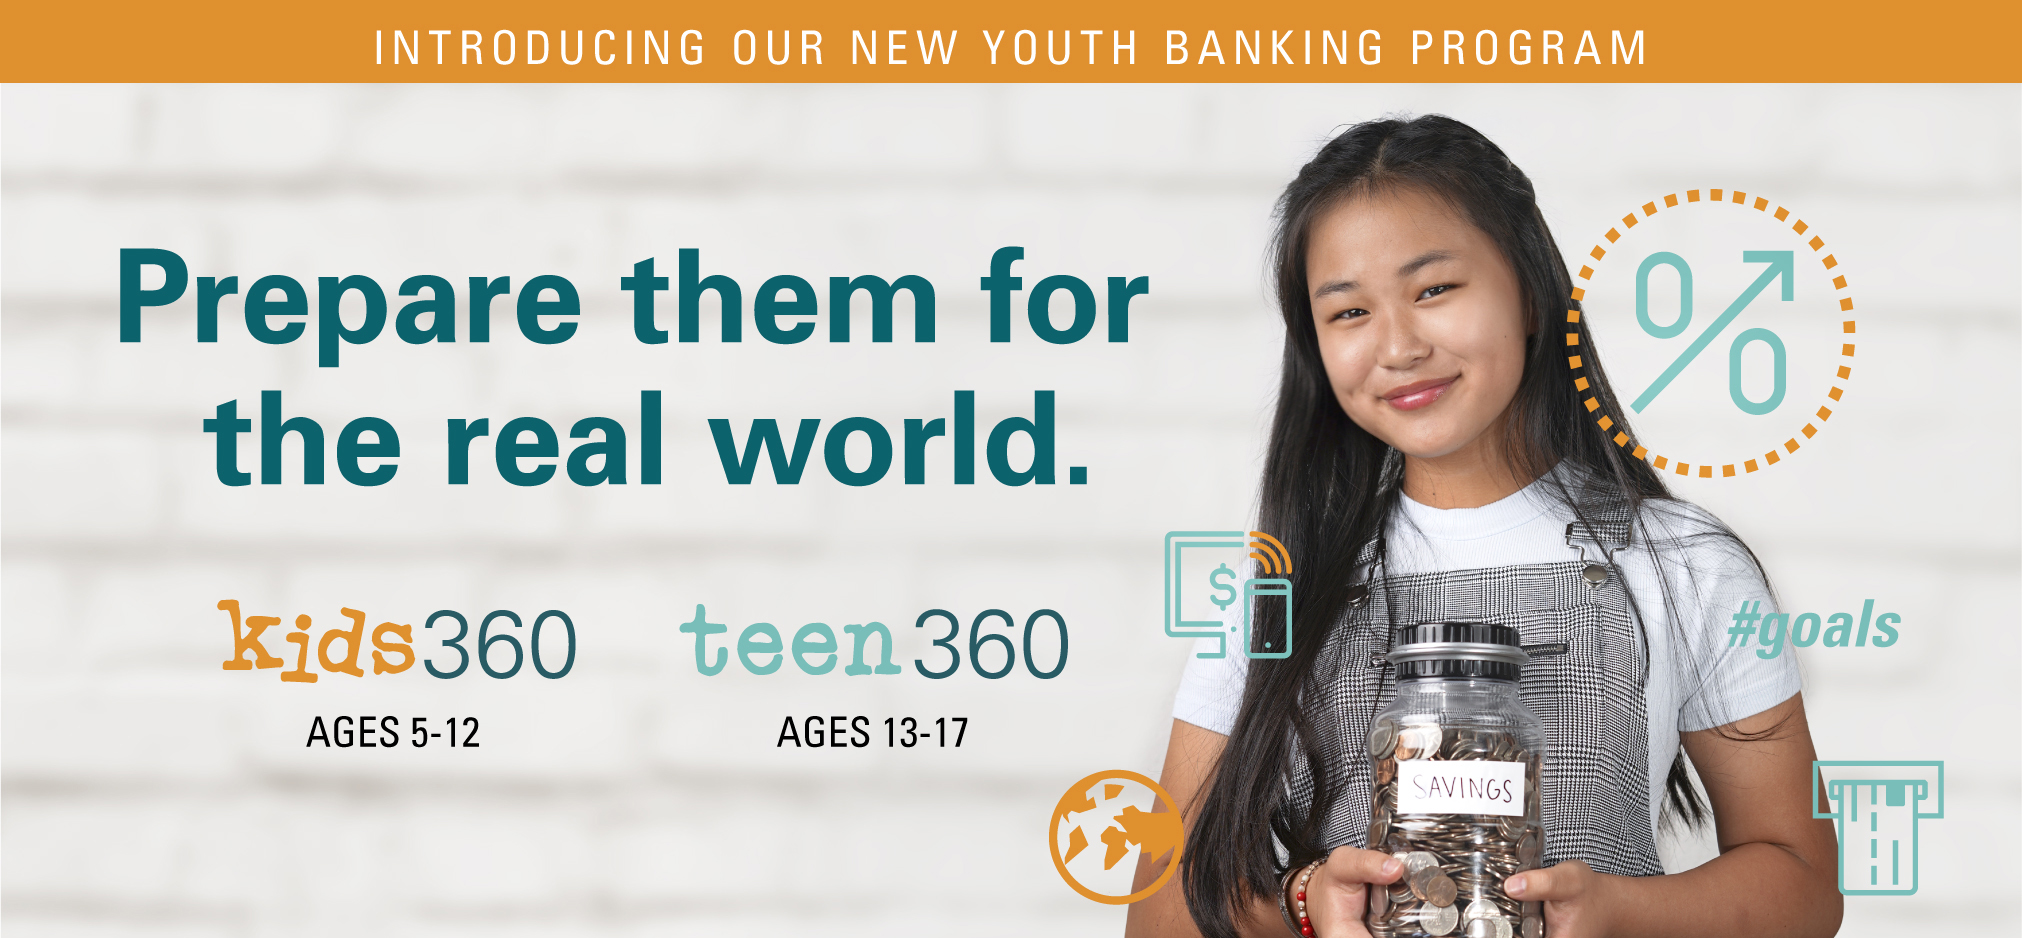 Prepare them for the real world. Kids360 ages 5 -12. Teen360 ages 13-17